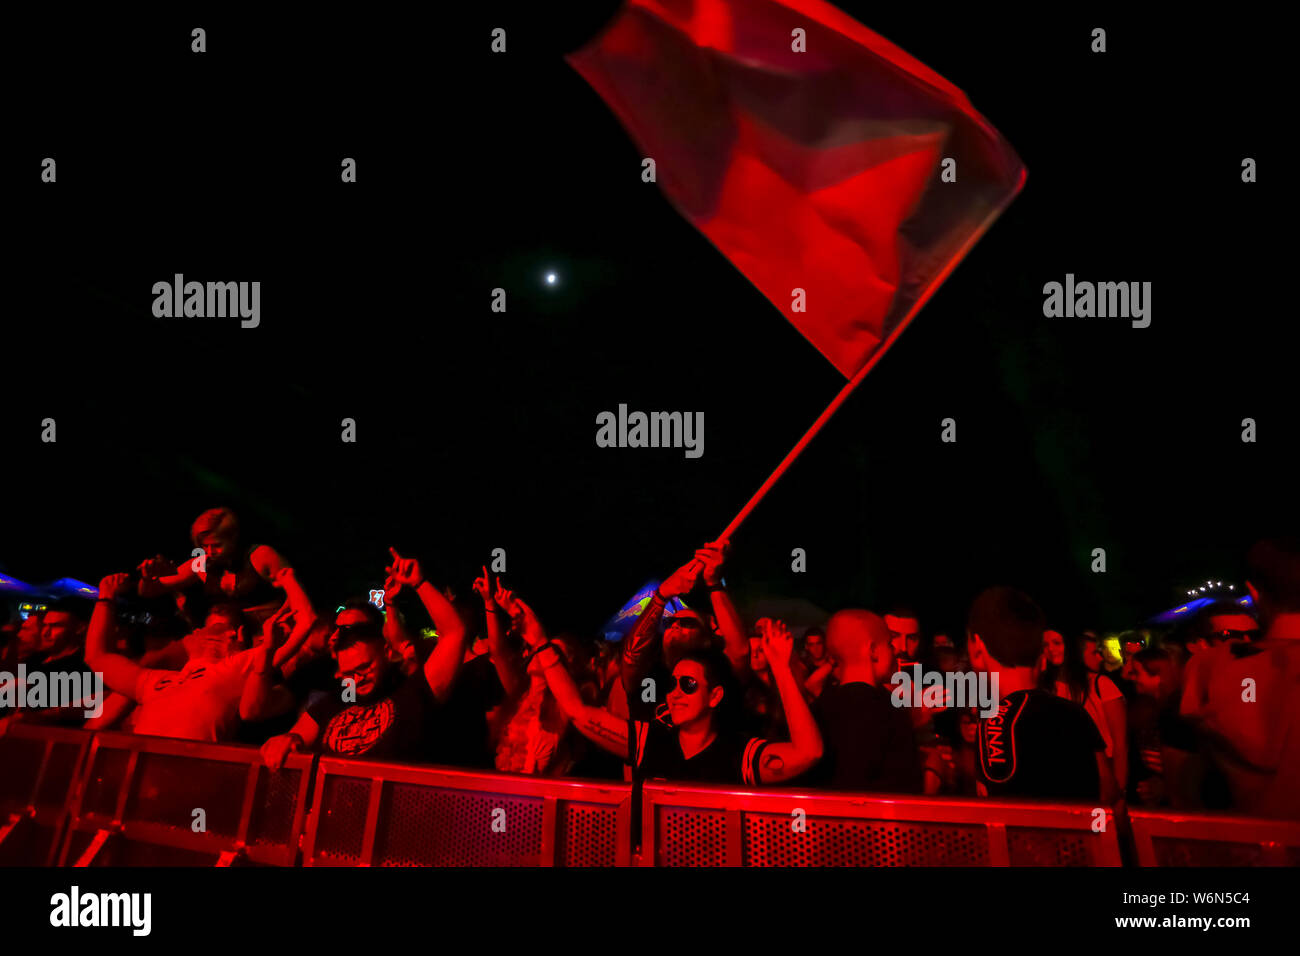 Brezje, Croatia - 20th July, 2019 : Audience with flag dancing during the Forestland, ultimate forest electronic music festival located in Brezje, Cro Stock Photo